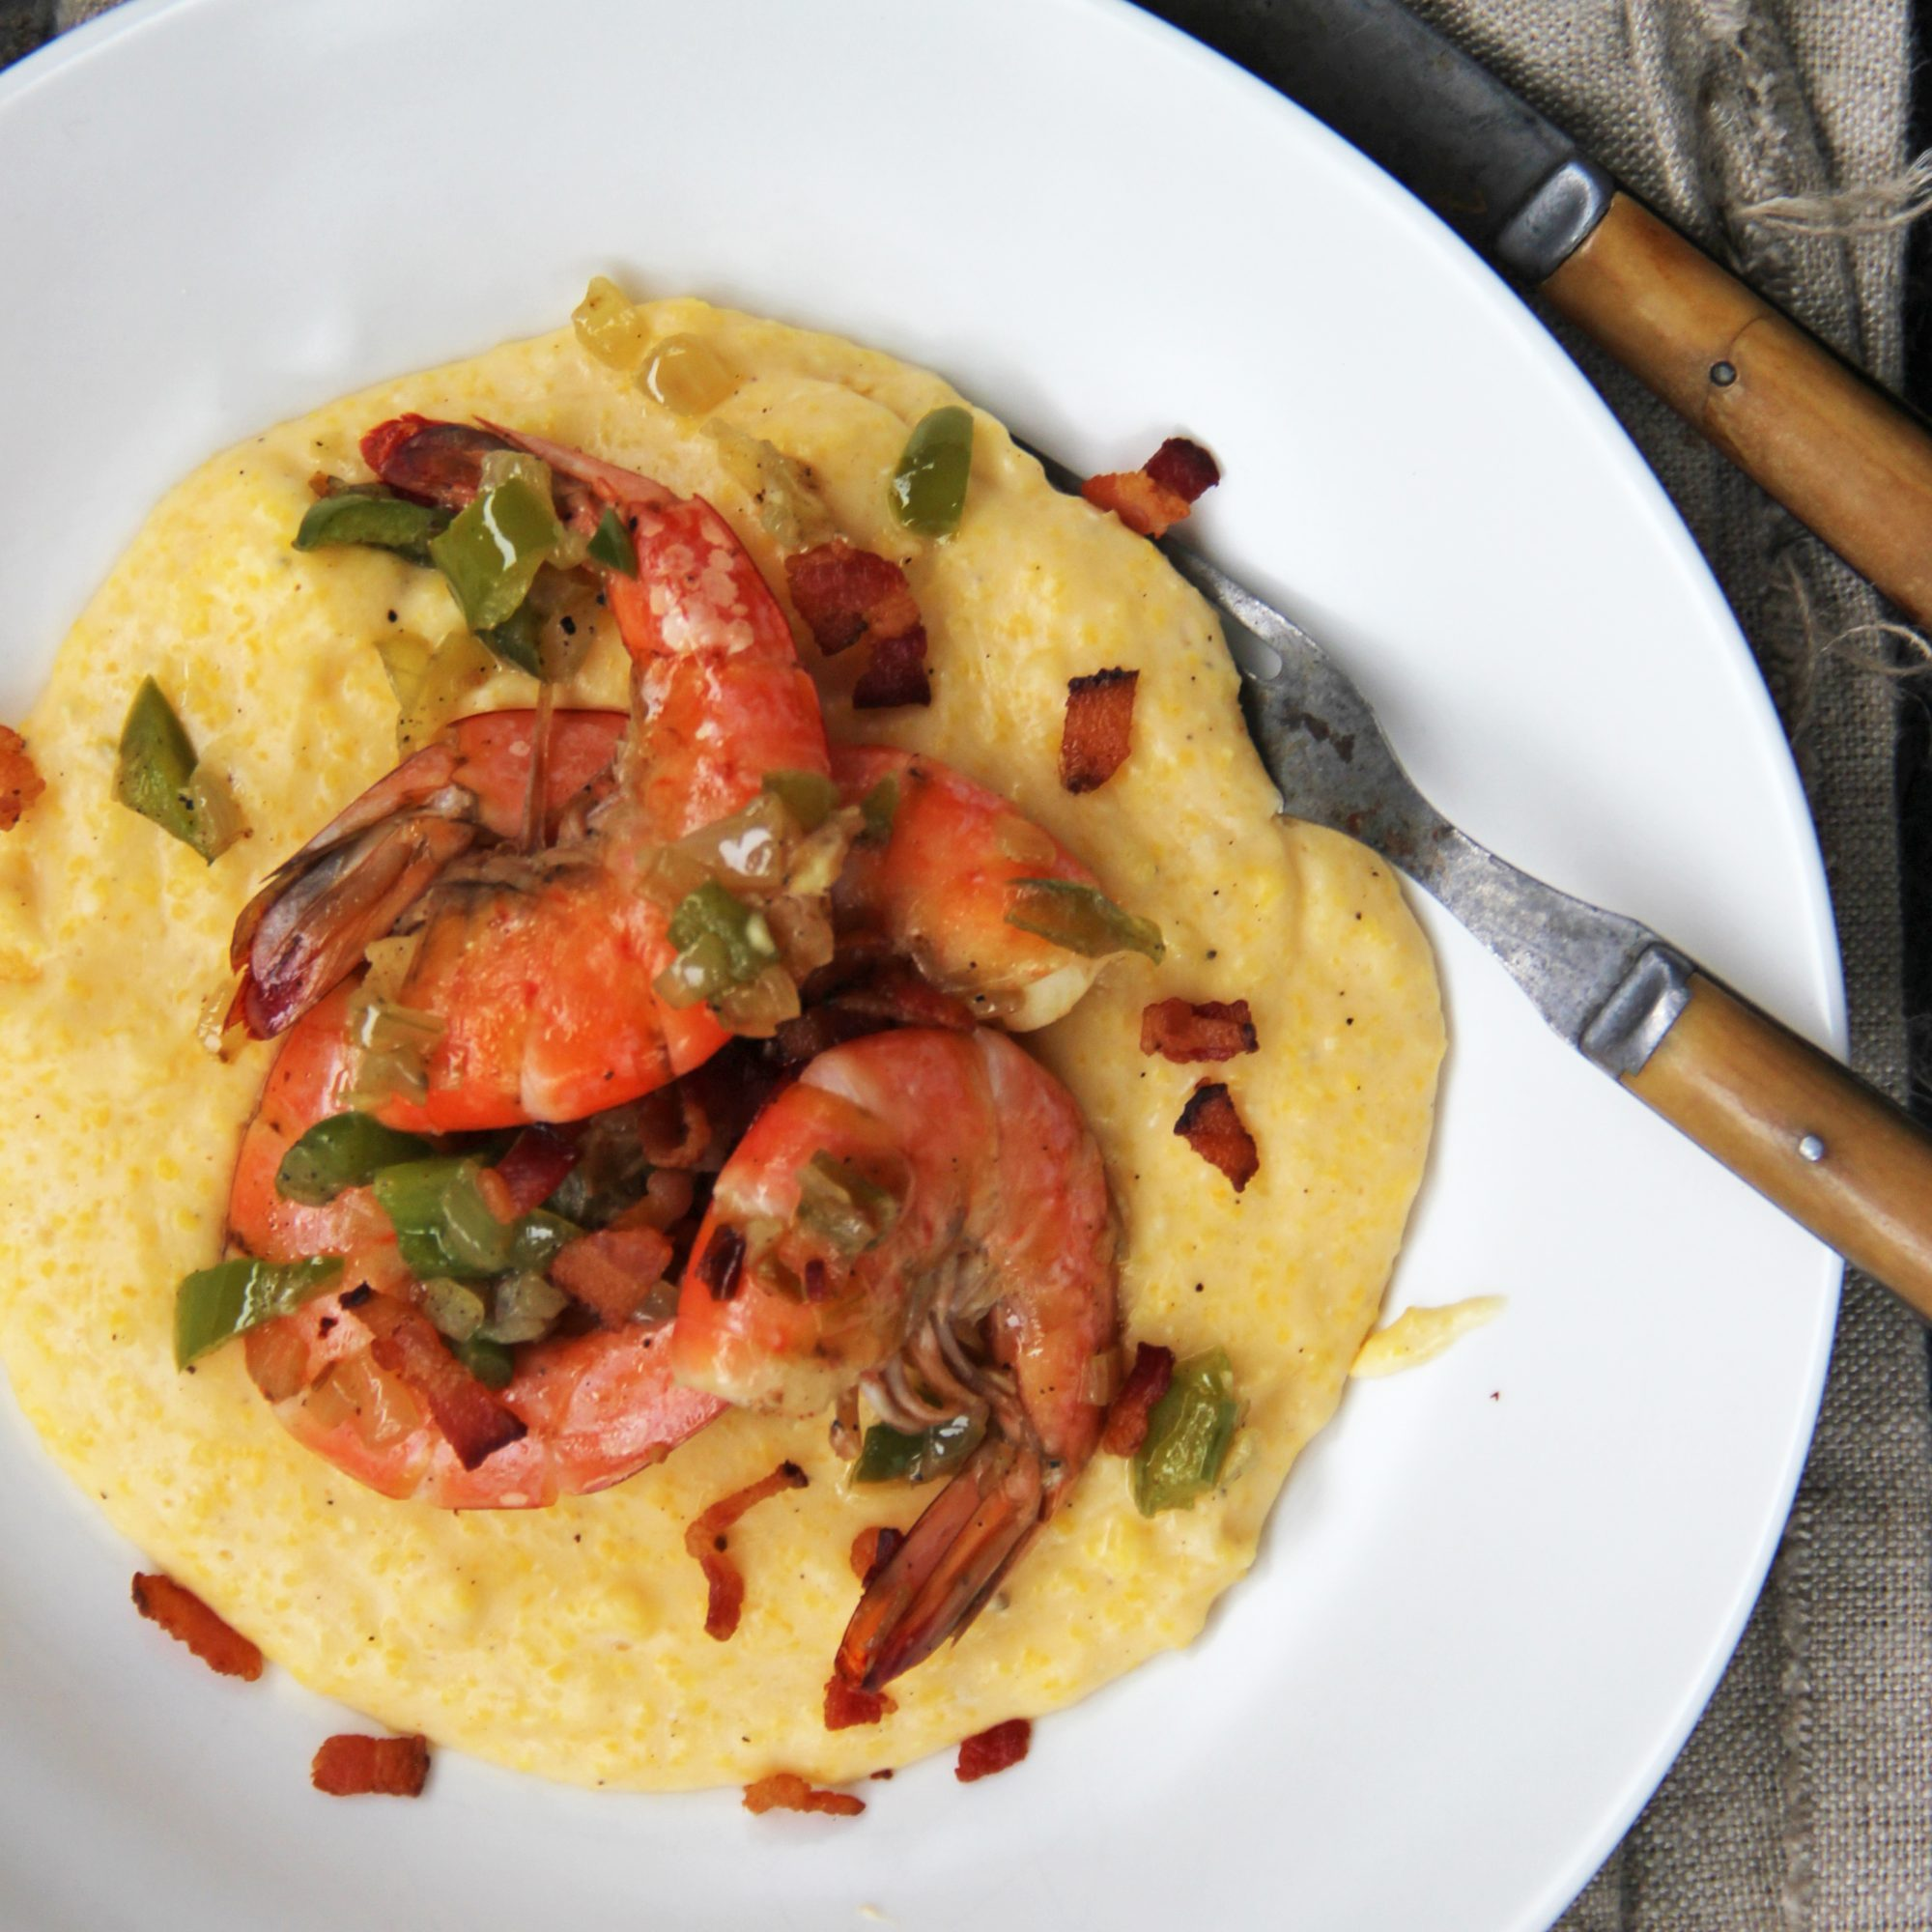 March 31: Shrimp and Cheese Grits